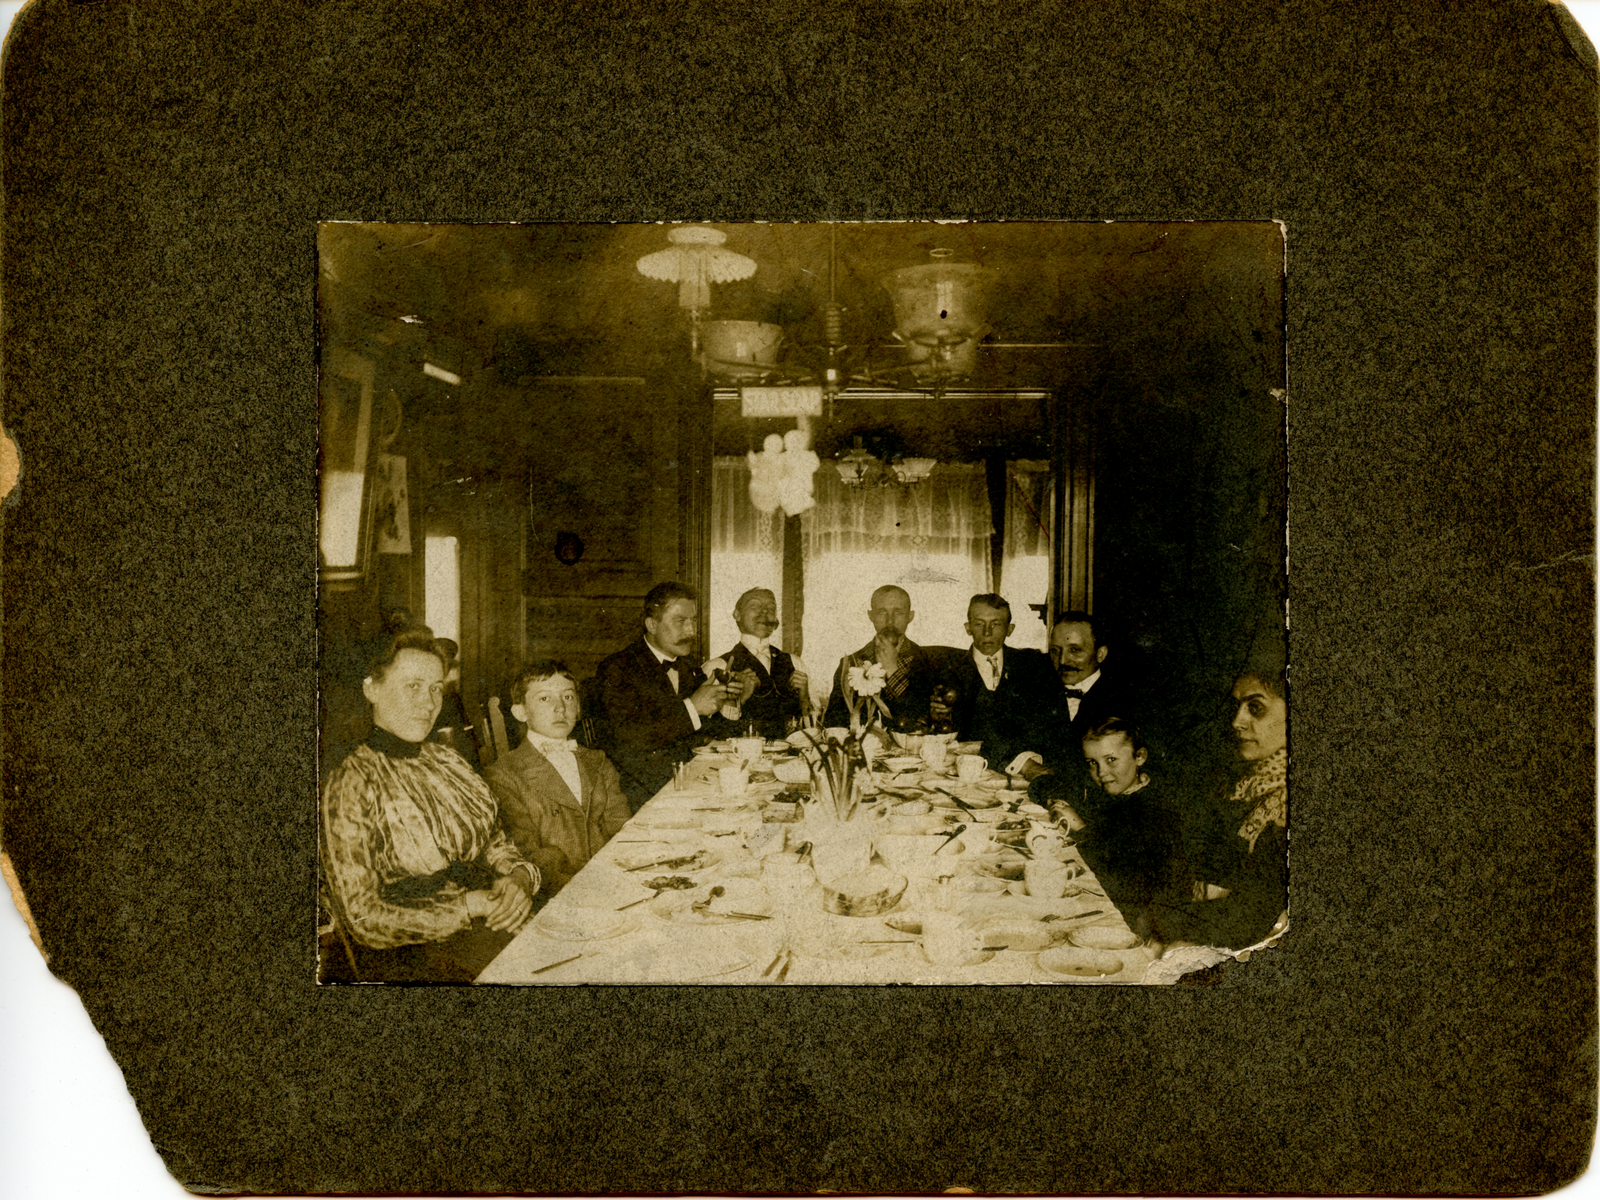 sac-louis-dinner-1900_large